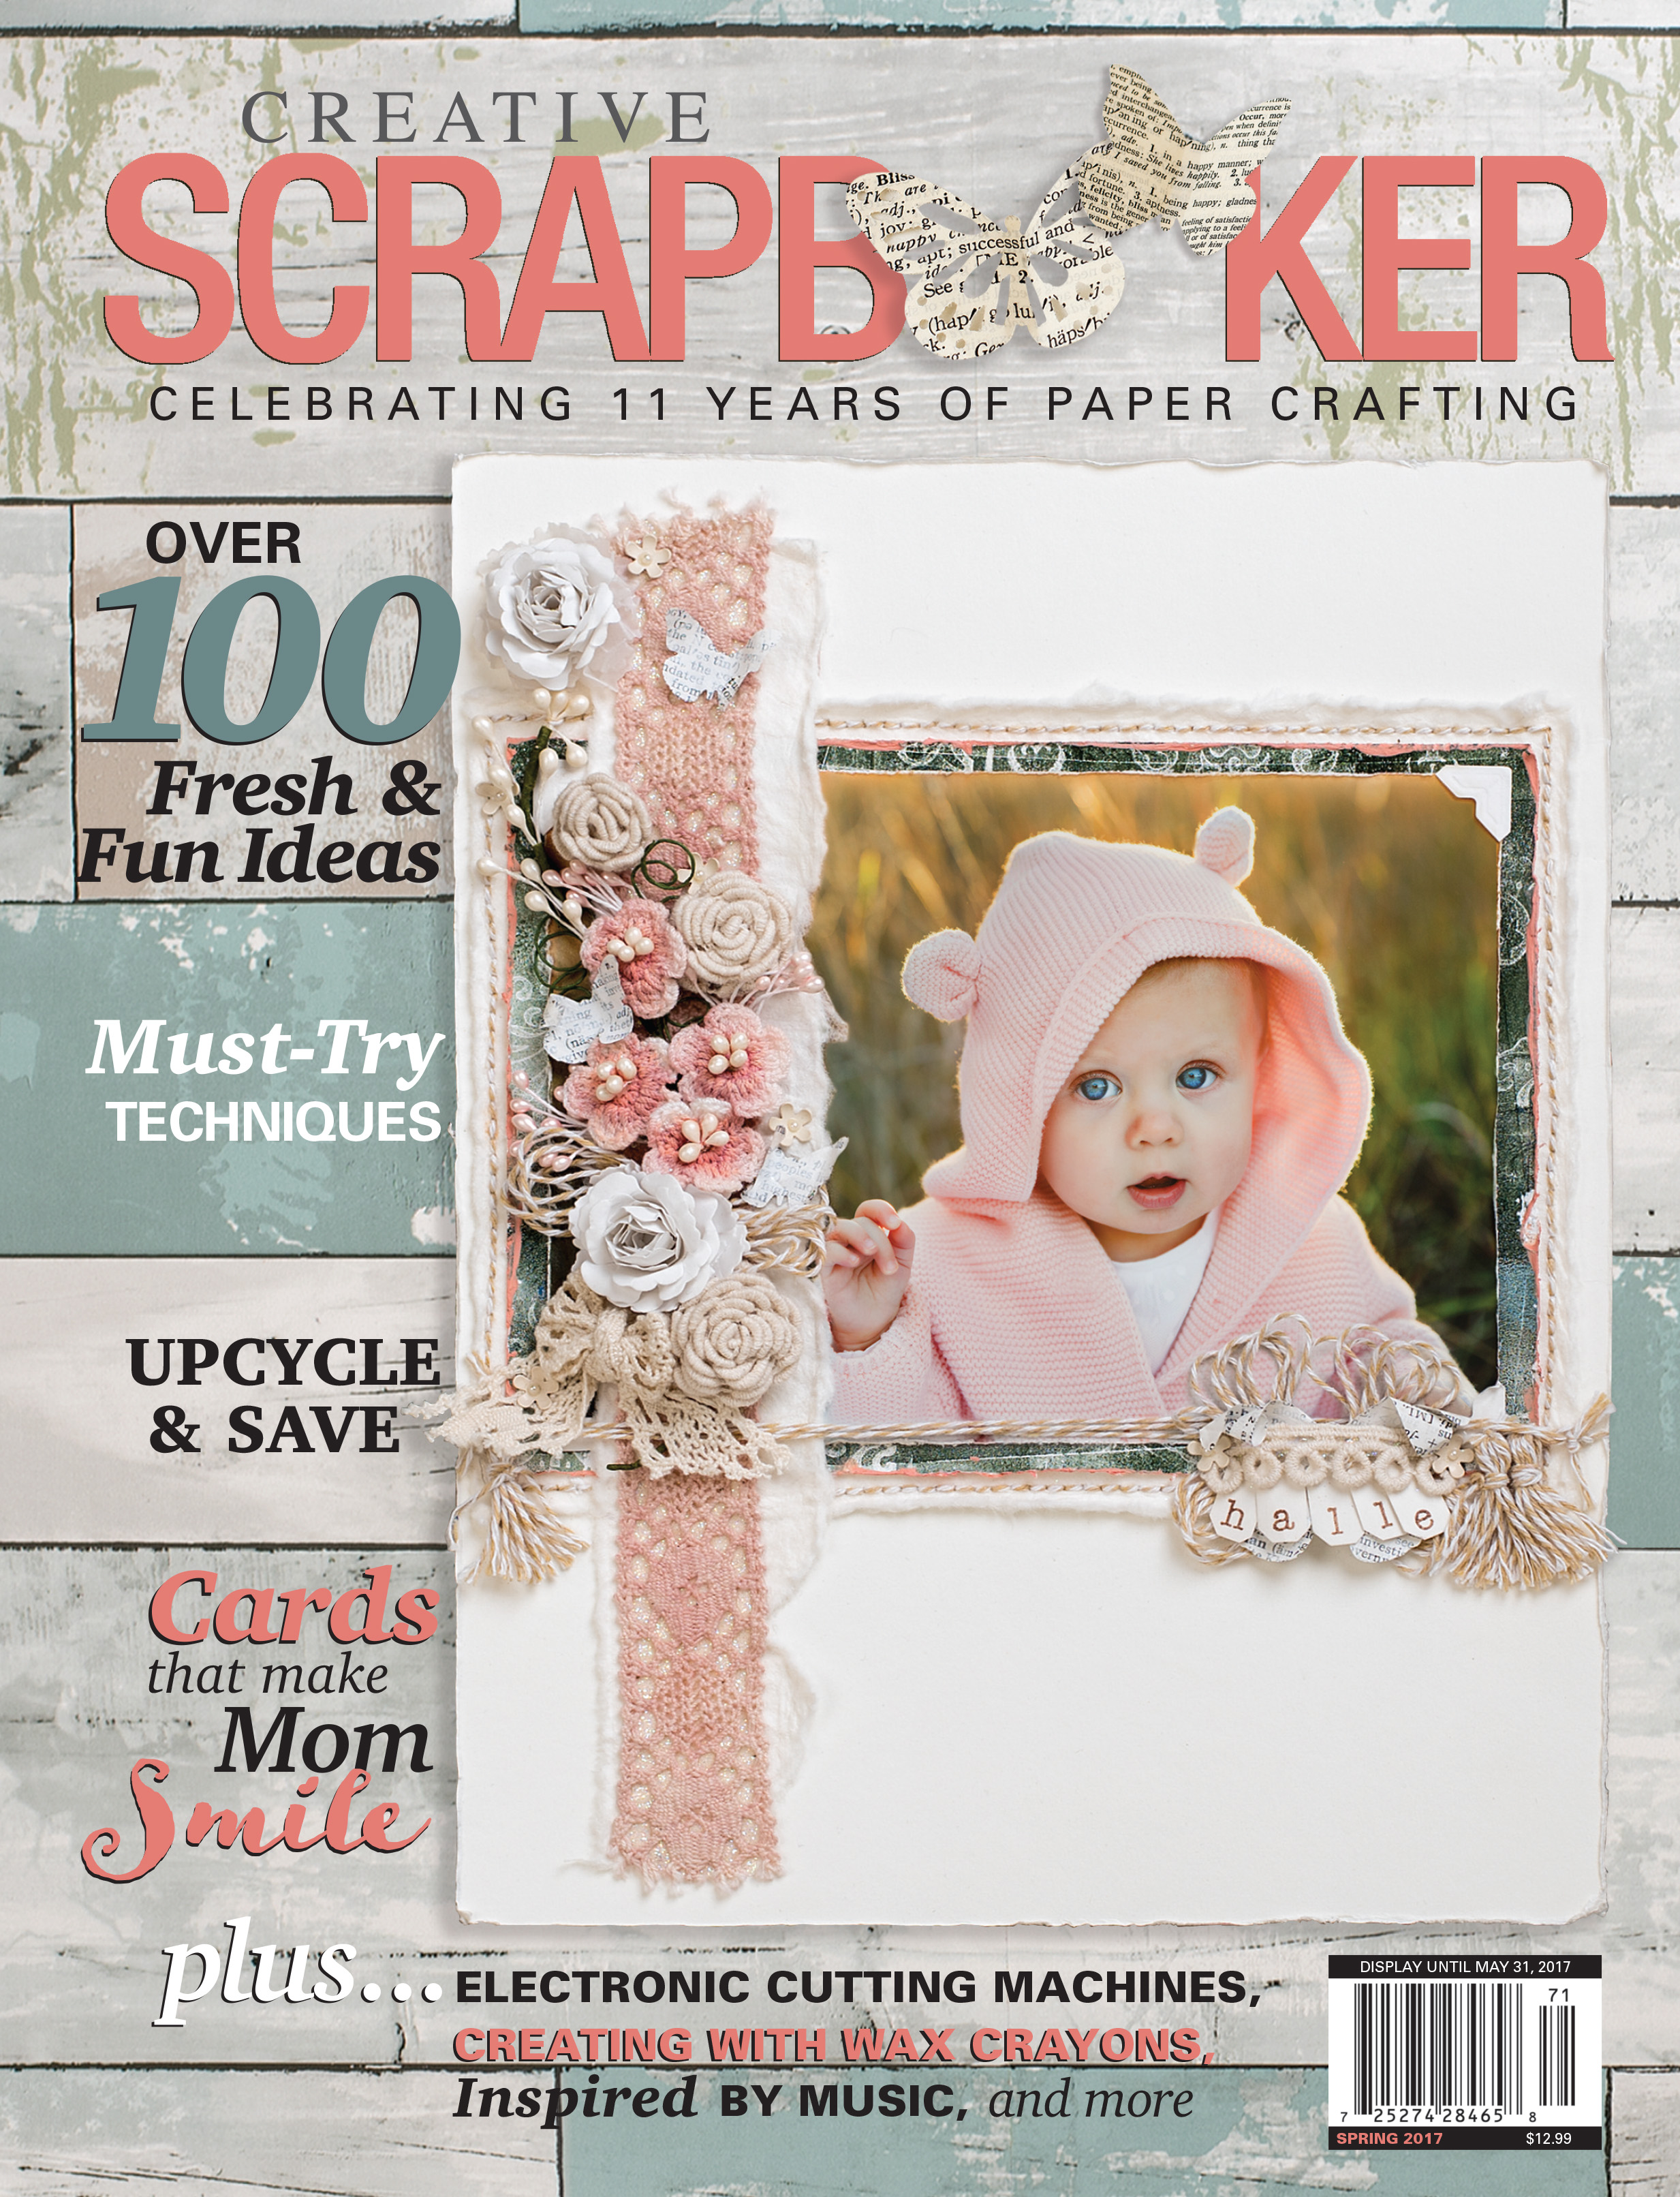 Spring 2017 Creative Scrapbooker Magazine Cover